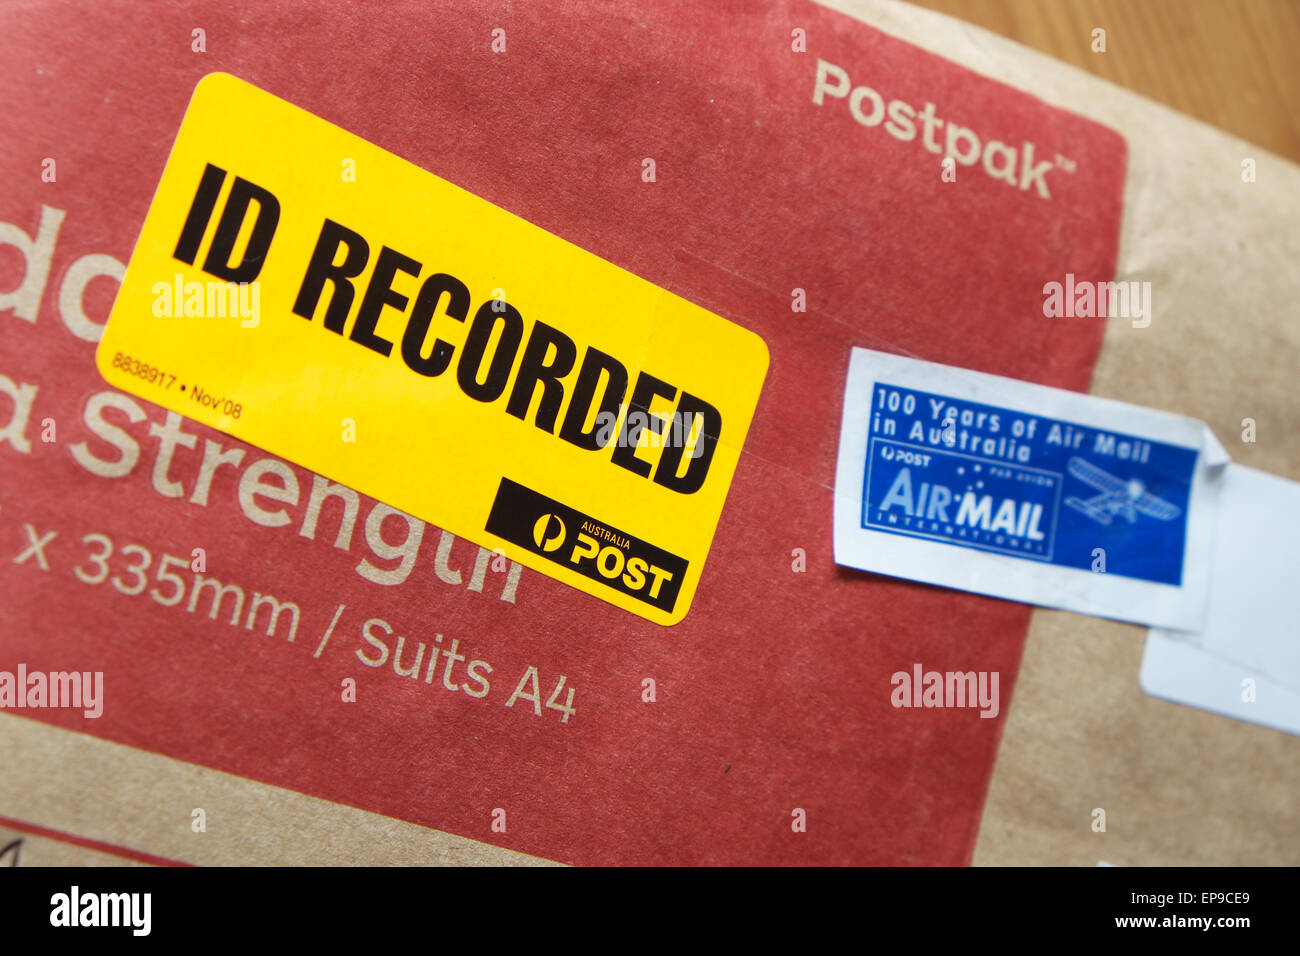 Australia Post postpak jiffy bag with ID Recorded delivery and Air Mail labels - Stock Image